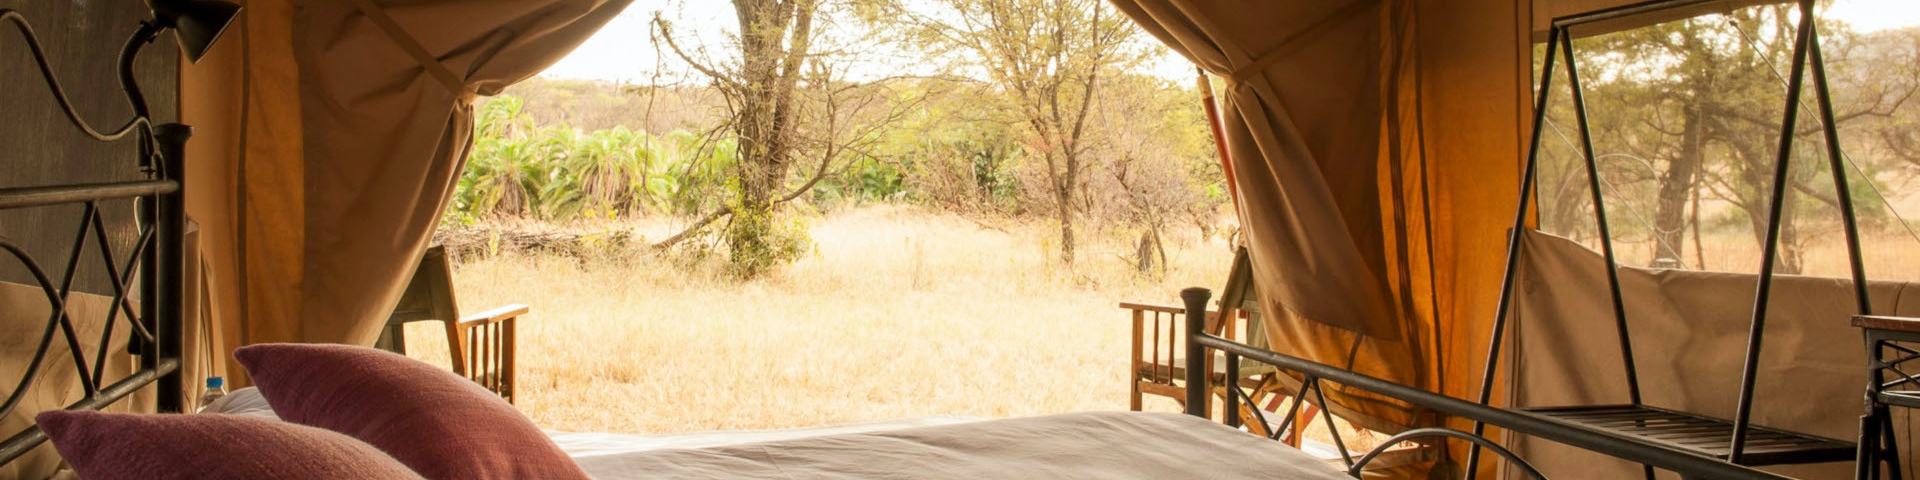 Accommodation in Ndutu Ngorongoro Tanzania Tented Bush Camp